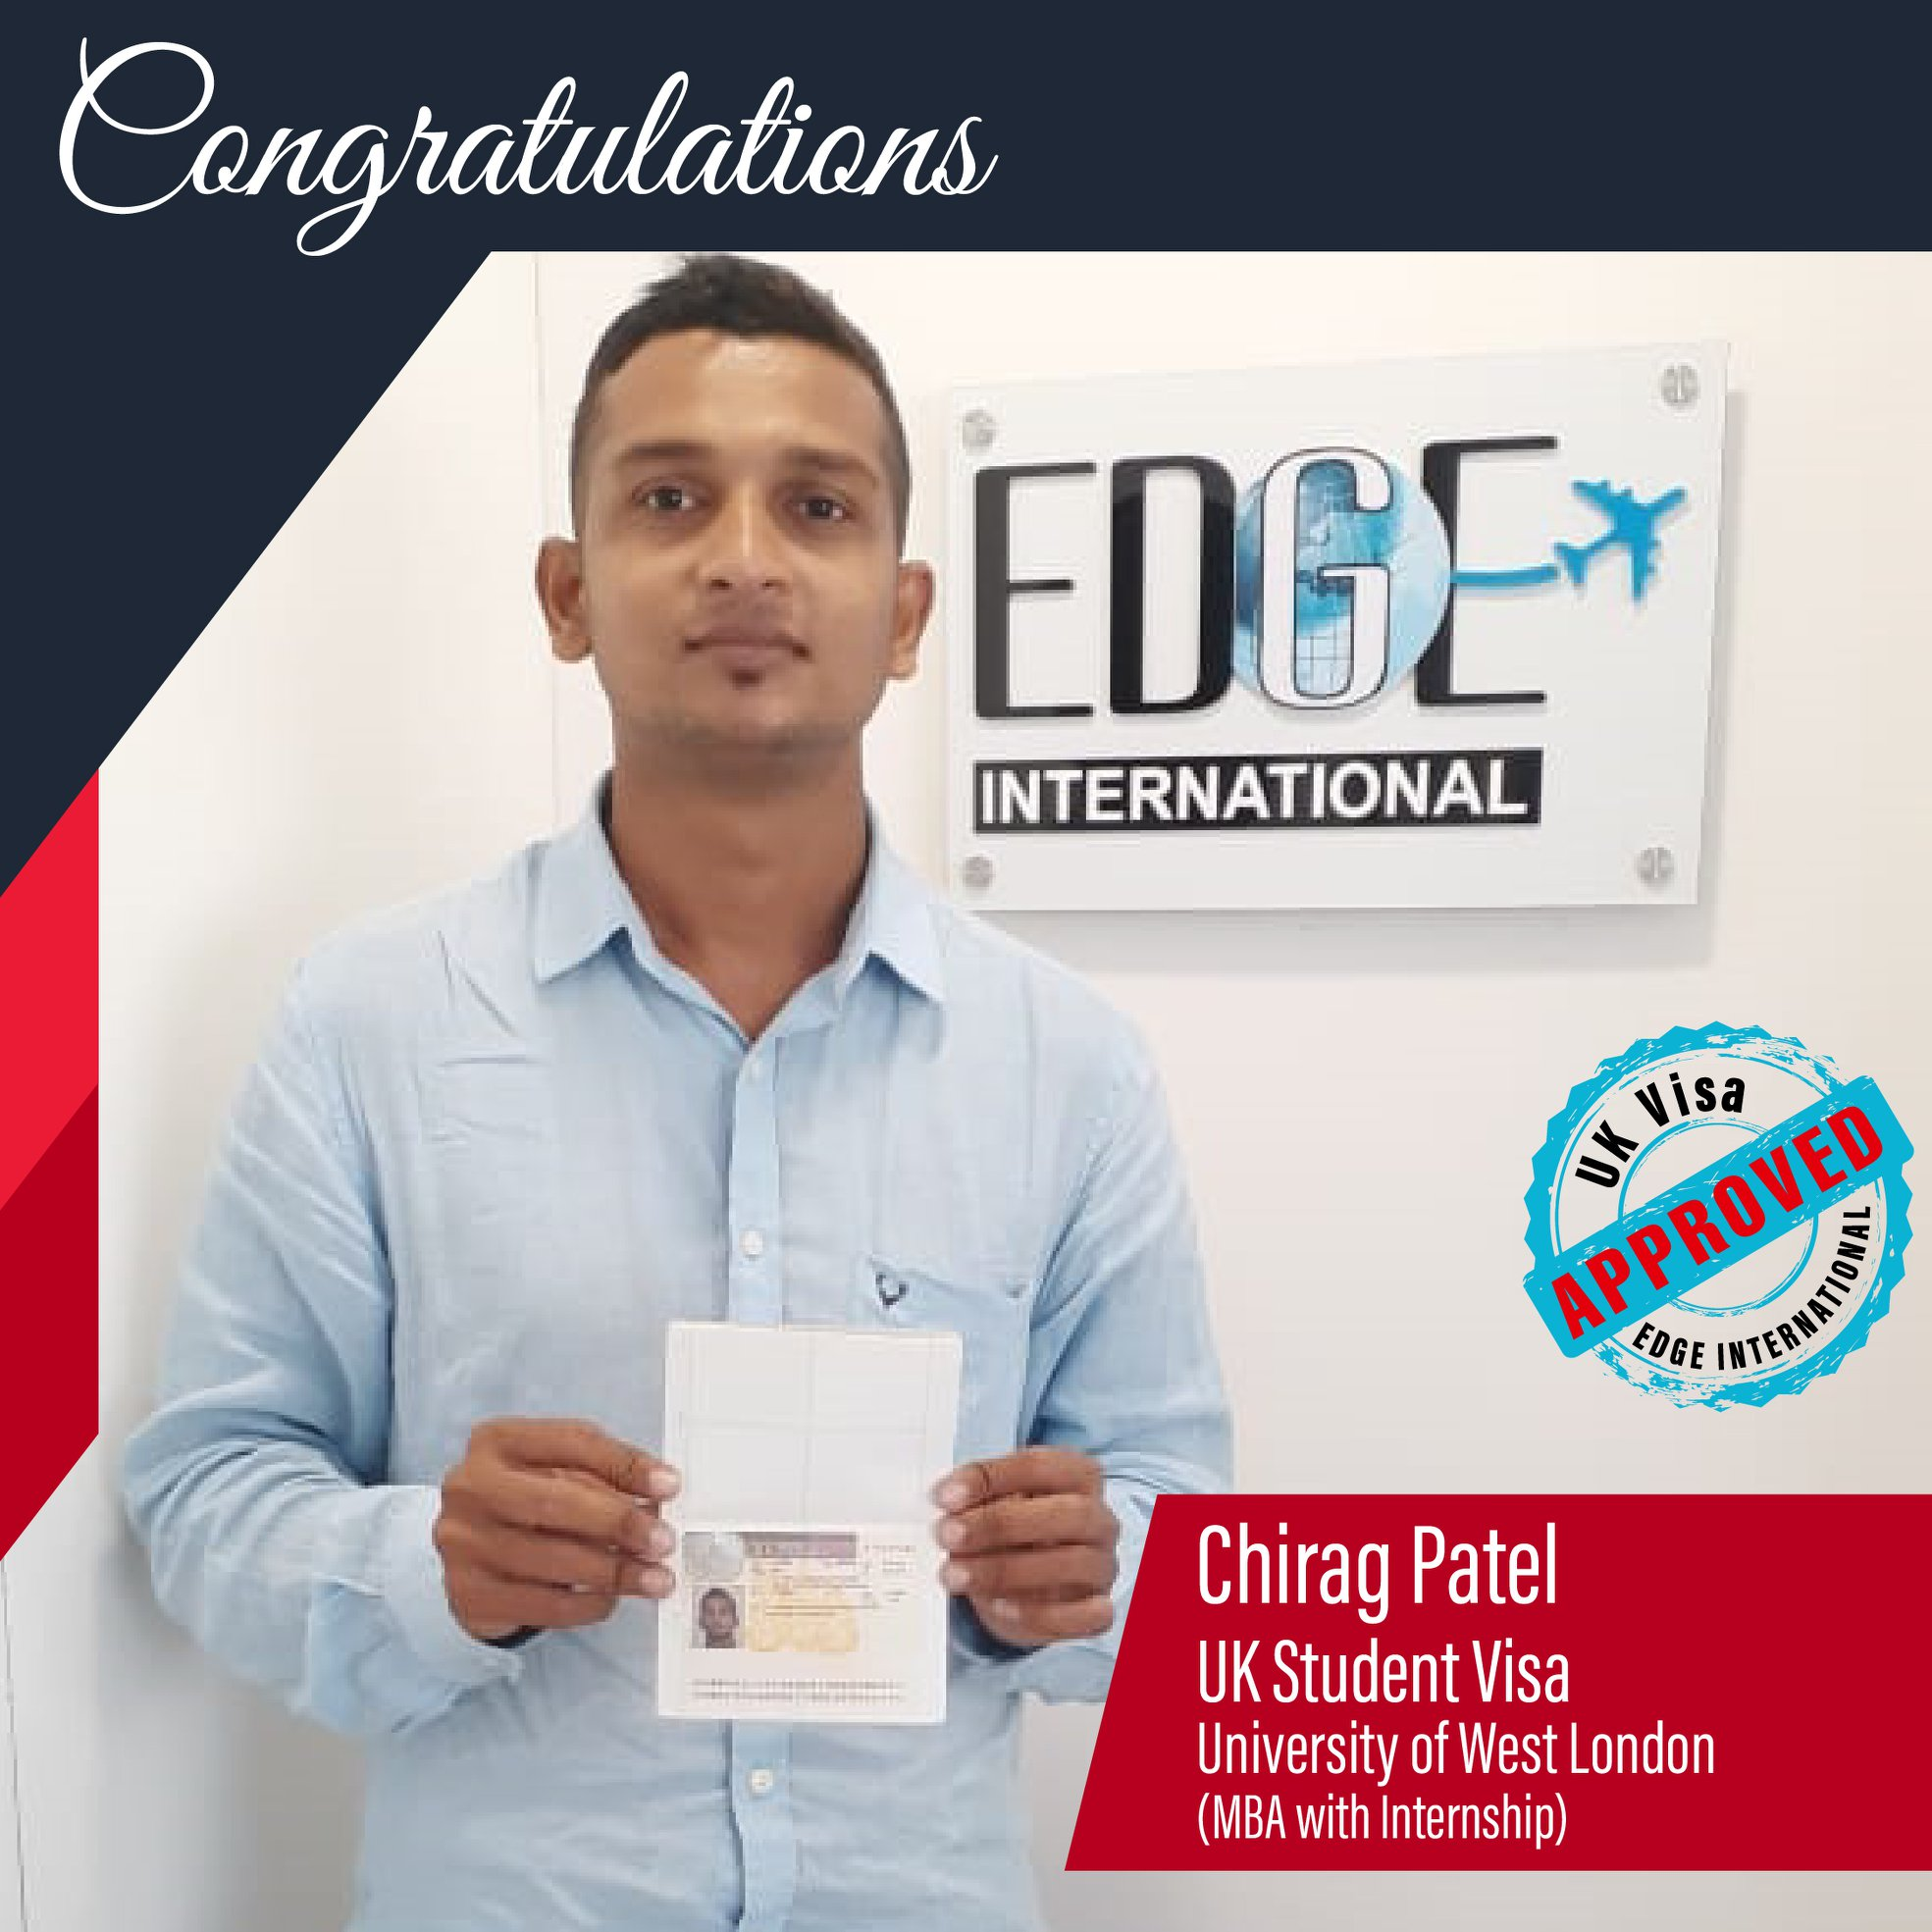 Congratulations 𝗖𝗵𝗶𝗿𝗮𝗴 𝗣𝗮𝘁𝗲𝗹 for securing UKStudentVisa for MBA with